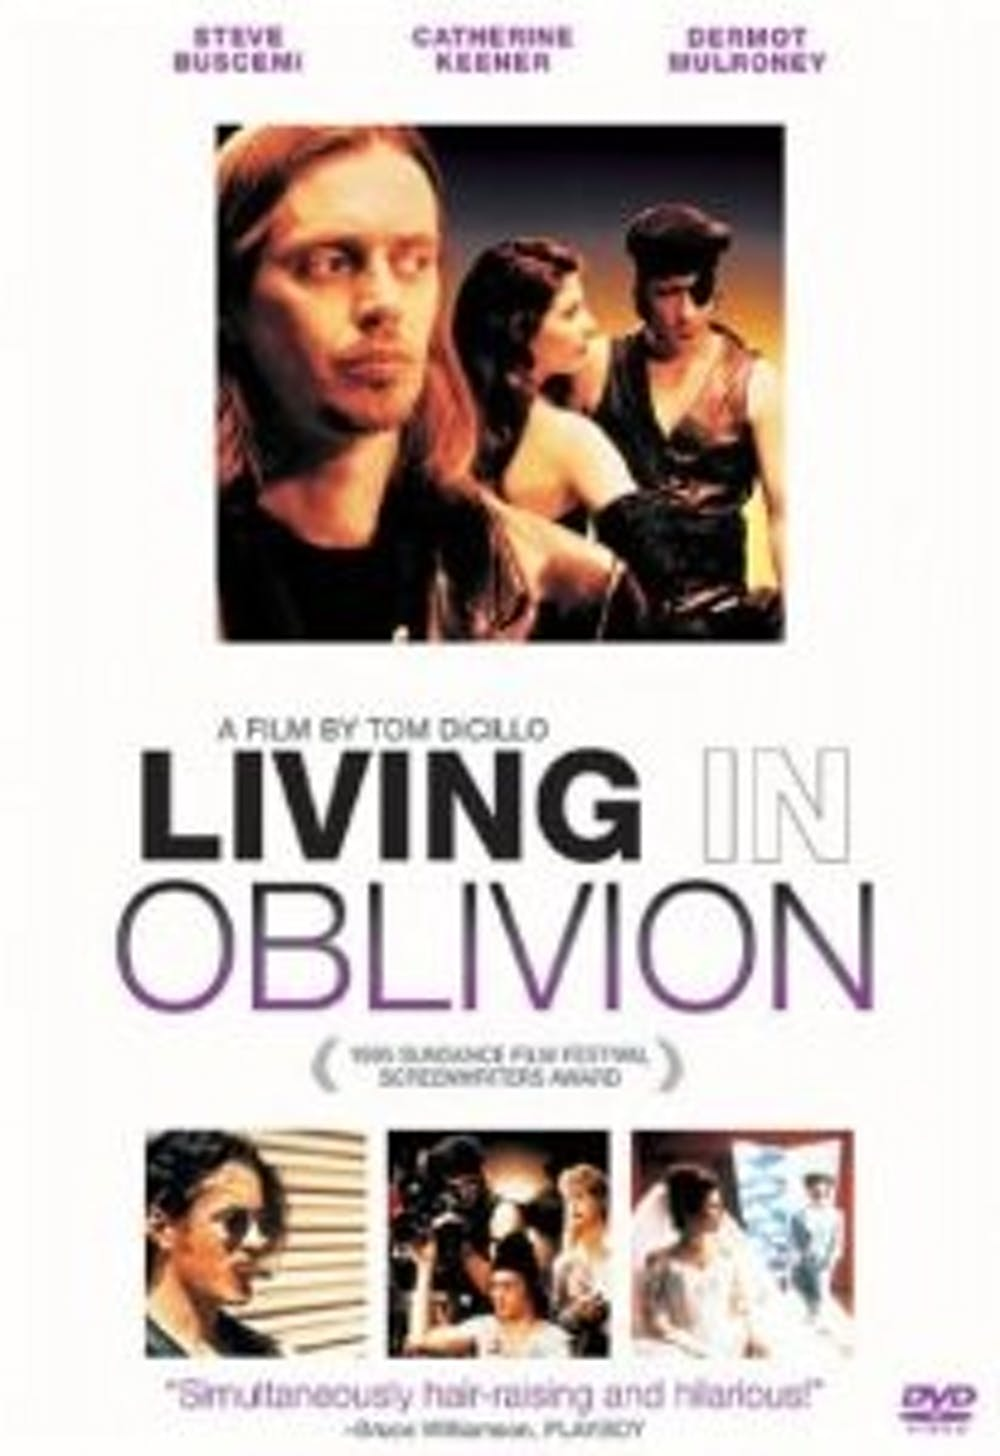 Grindhouse Review: 'Living in Oblivion'